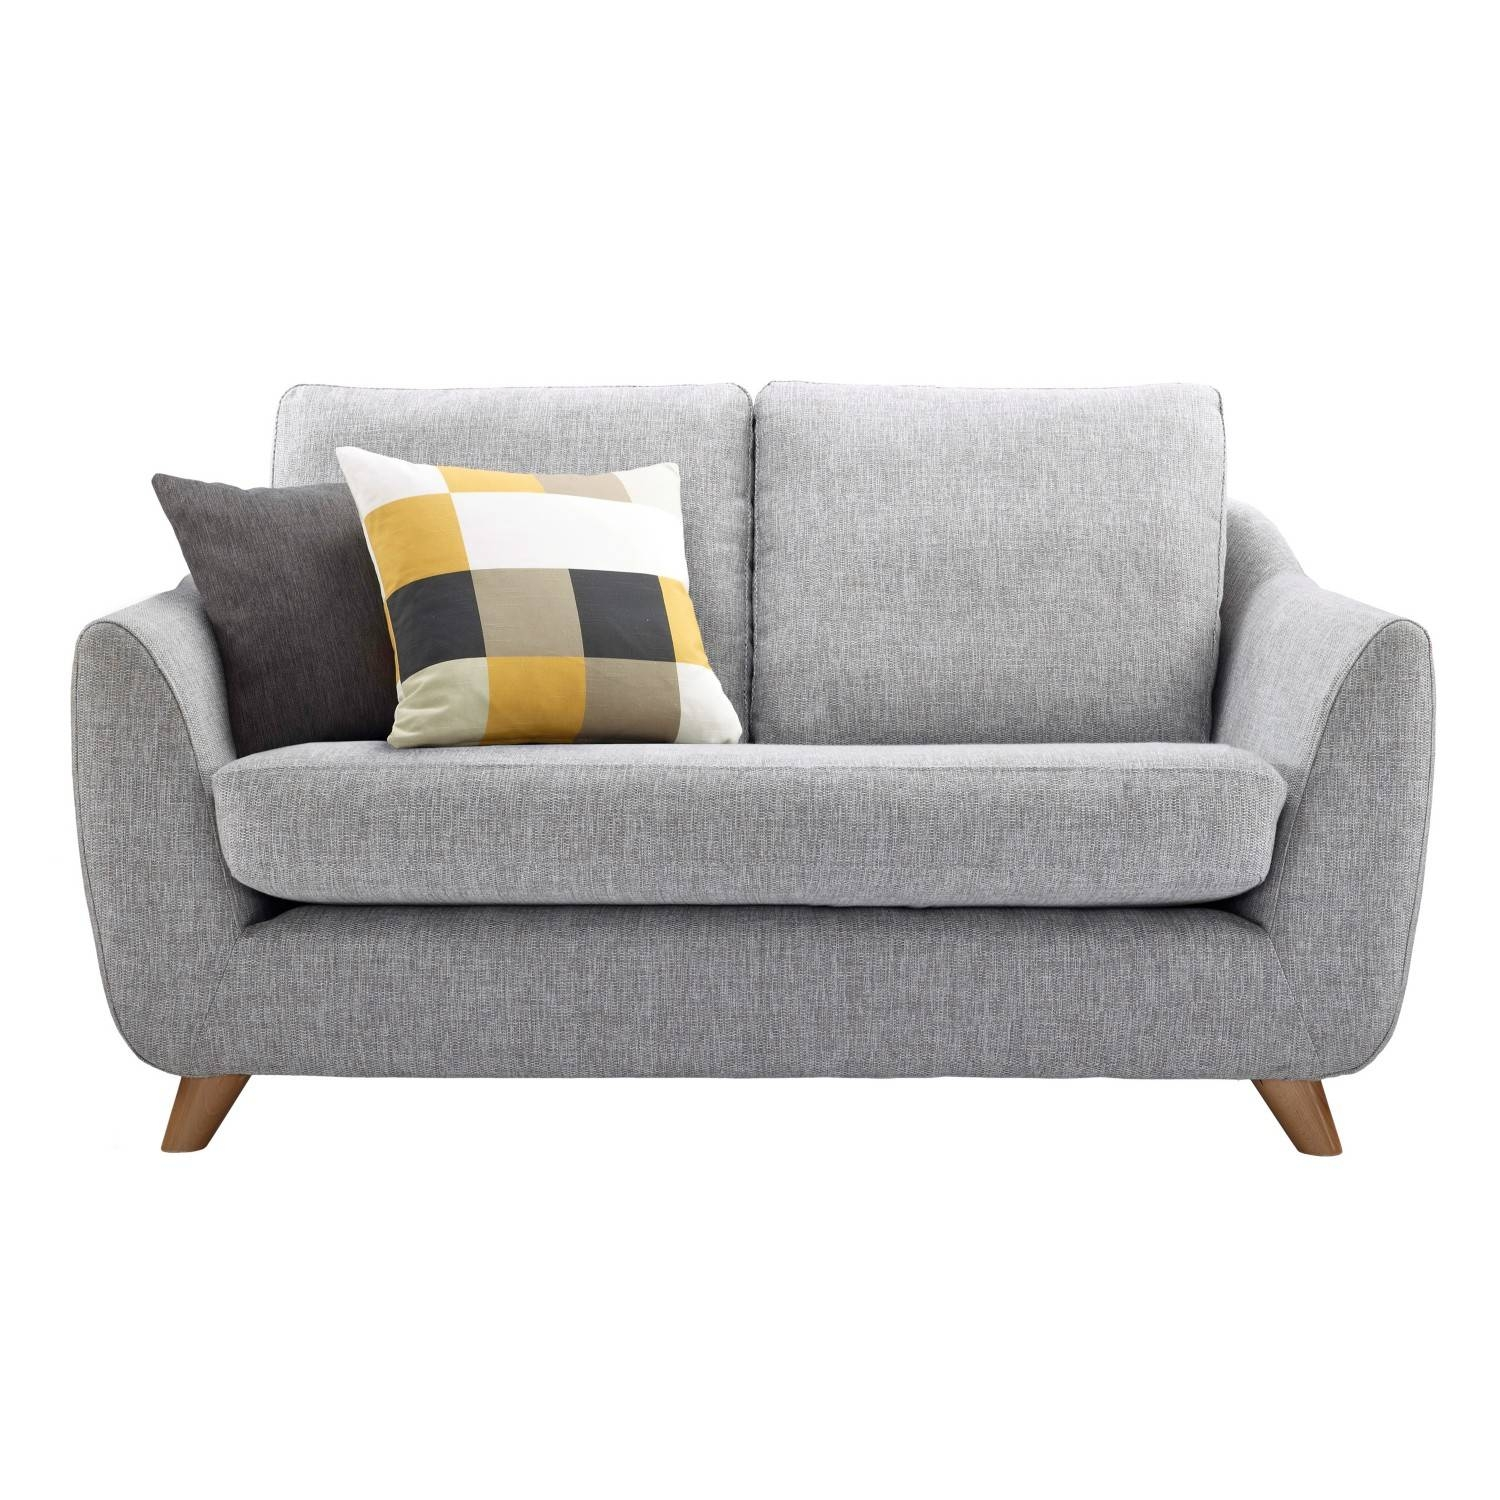 Furniture: Interior Modern Sofa Bed Cute Sofas Design Interior With Regard To Commercial Sofas (View 7 of 15)